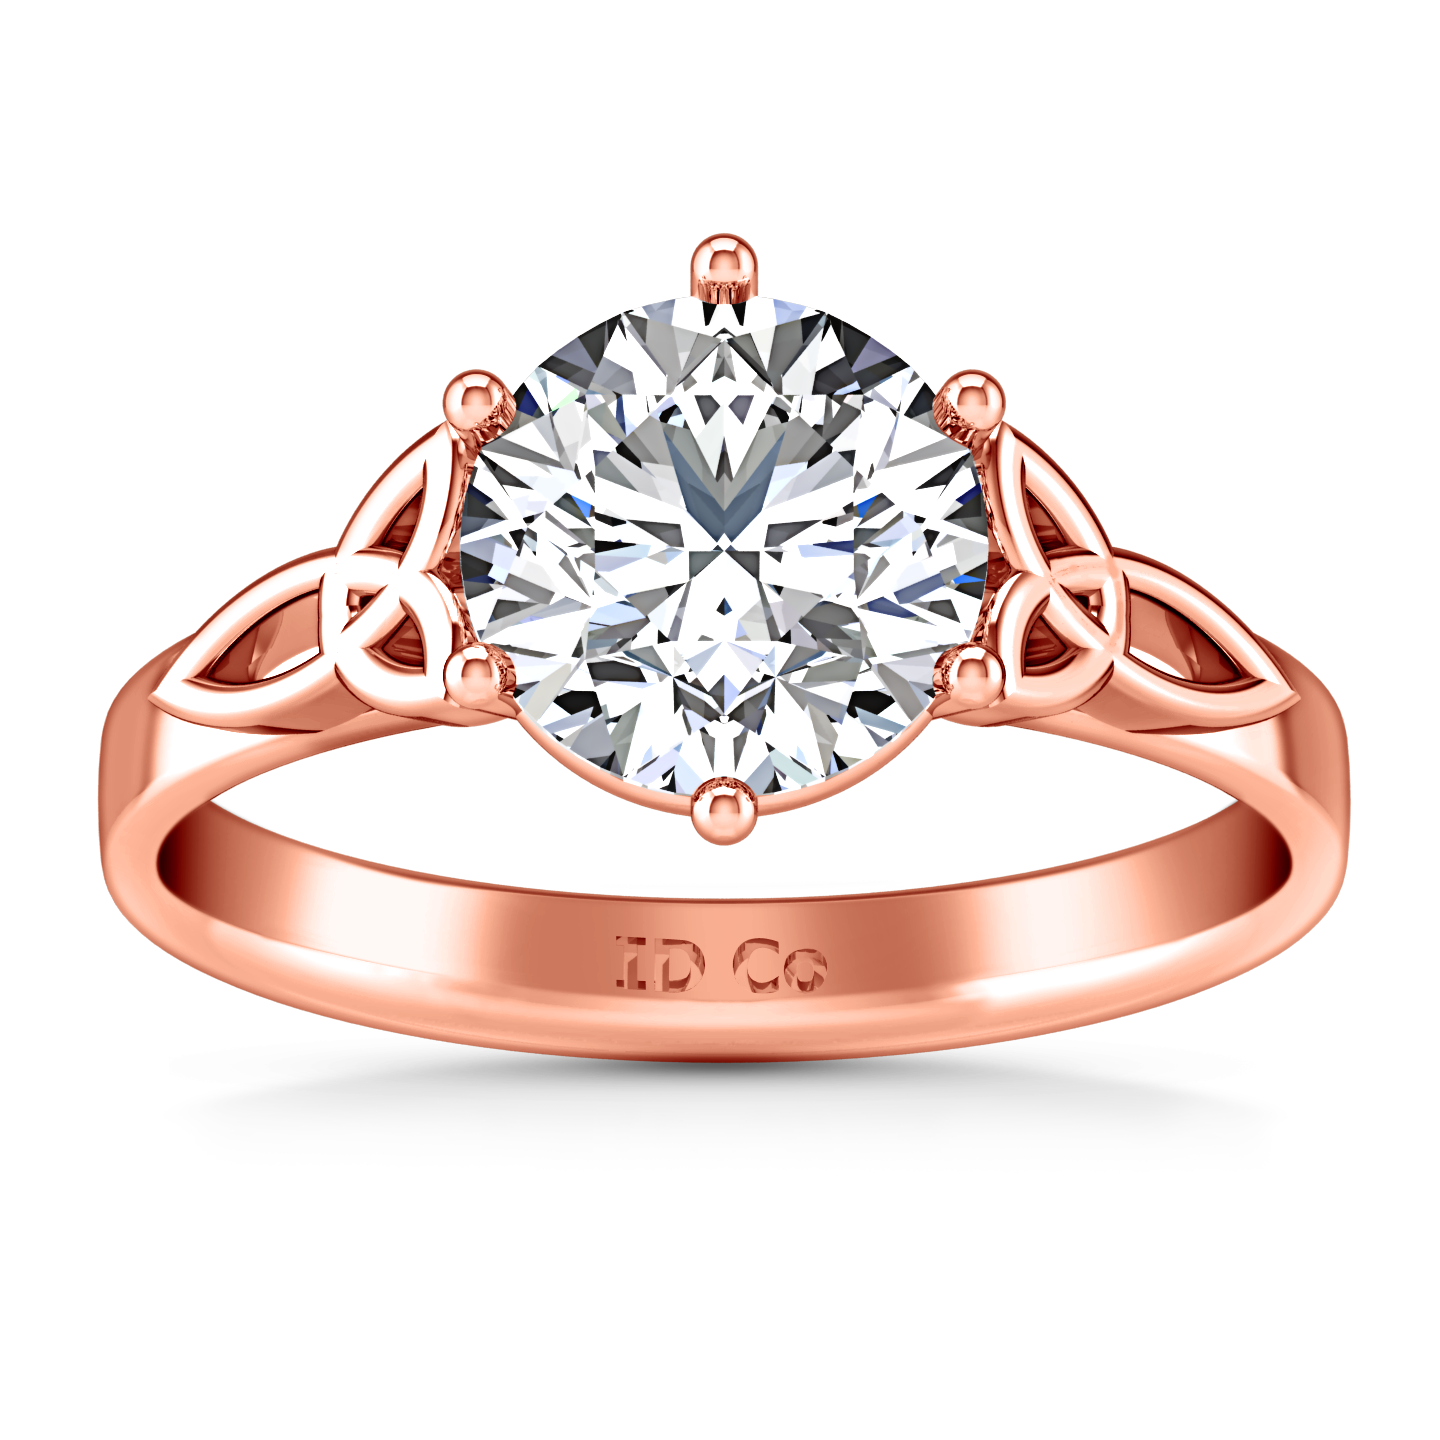 ring imagine ellip r rose rings diamonds stone chantal engagement gold three products